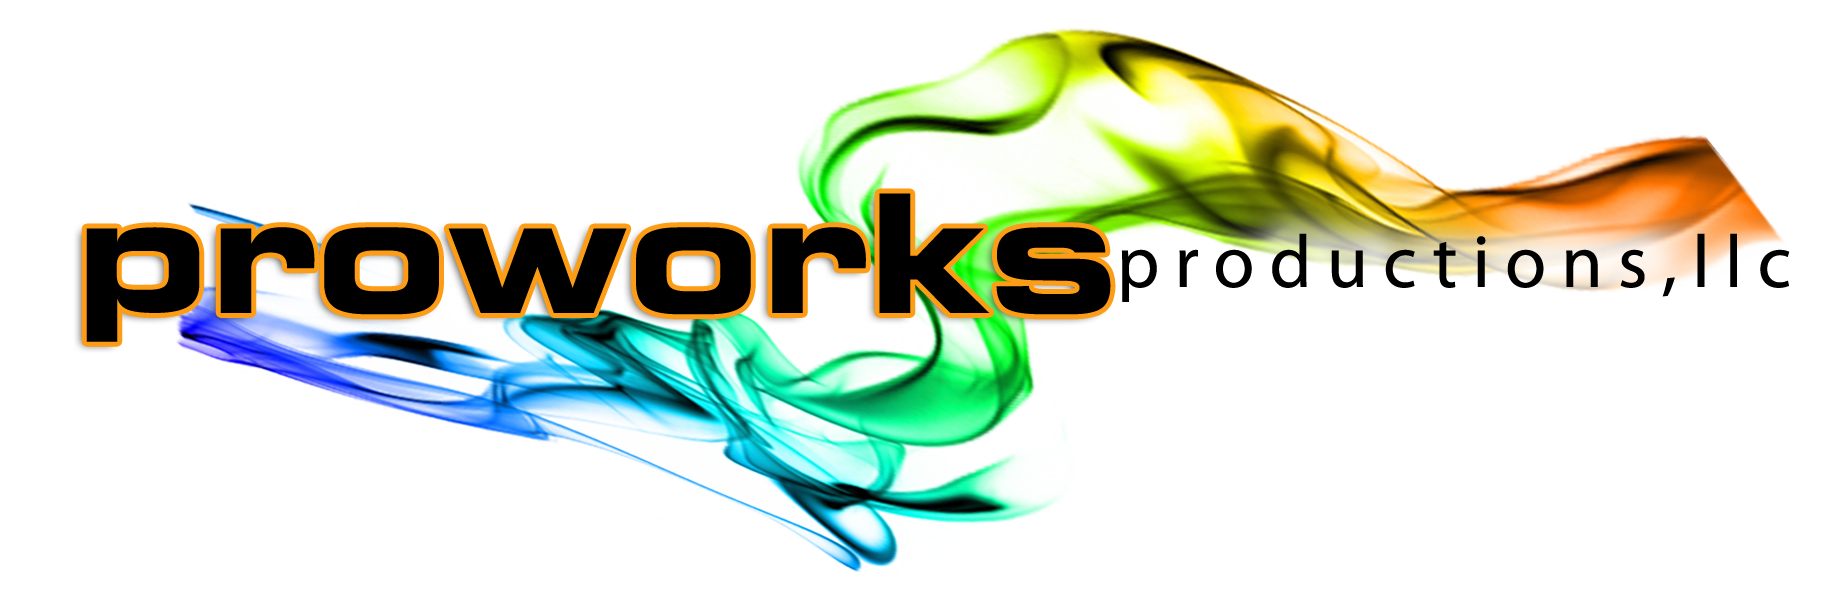 Proworks Productions,LLC